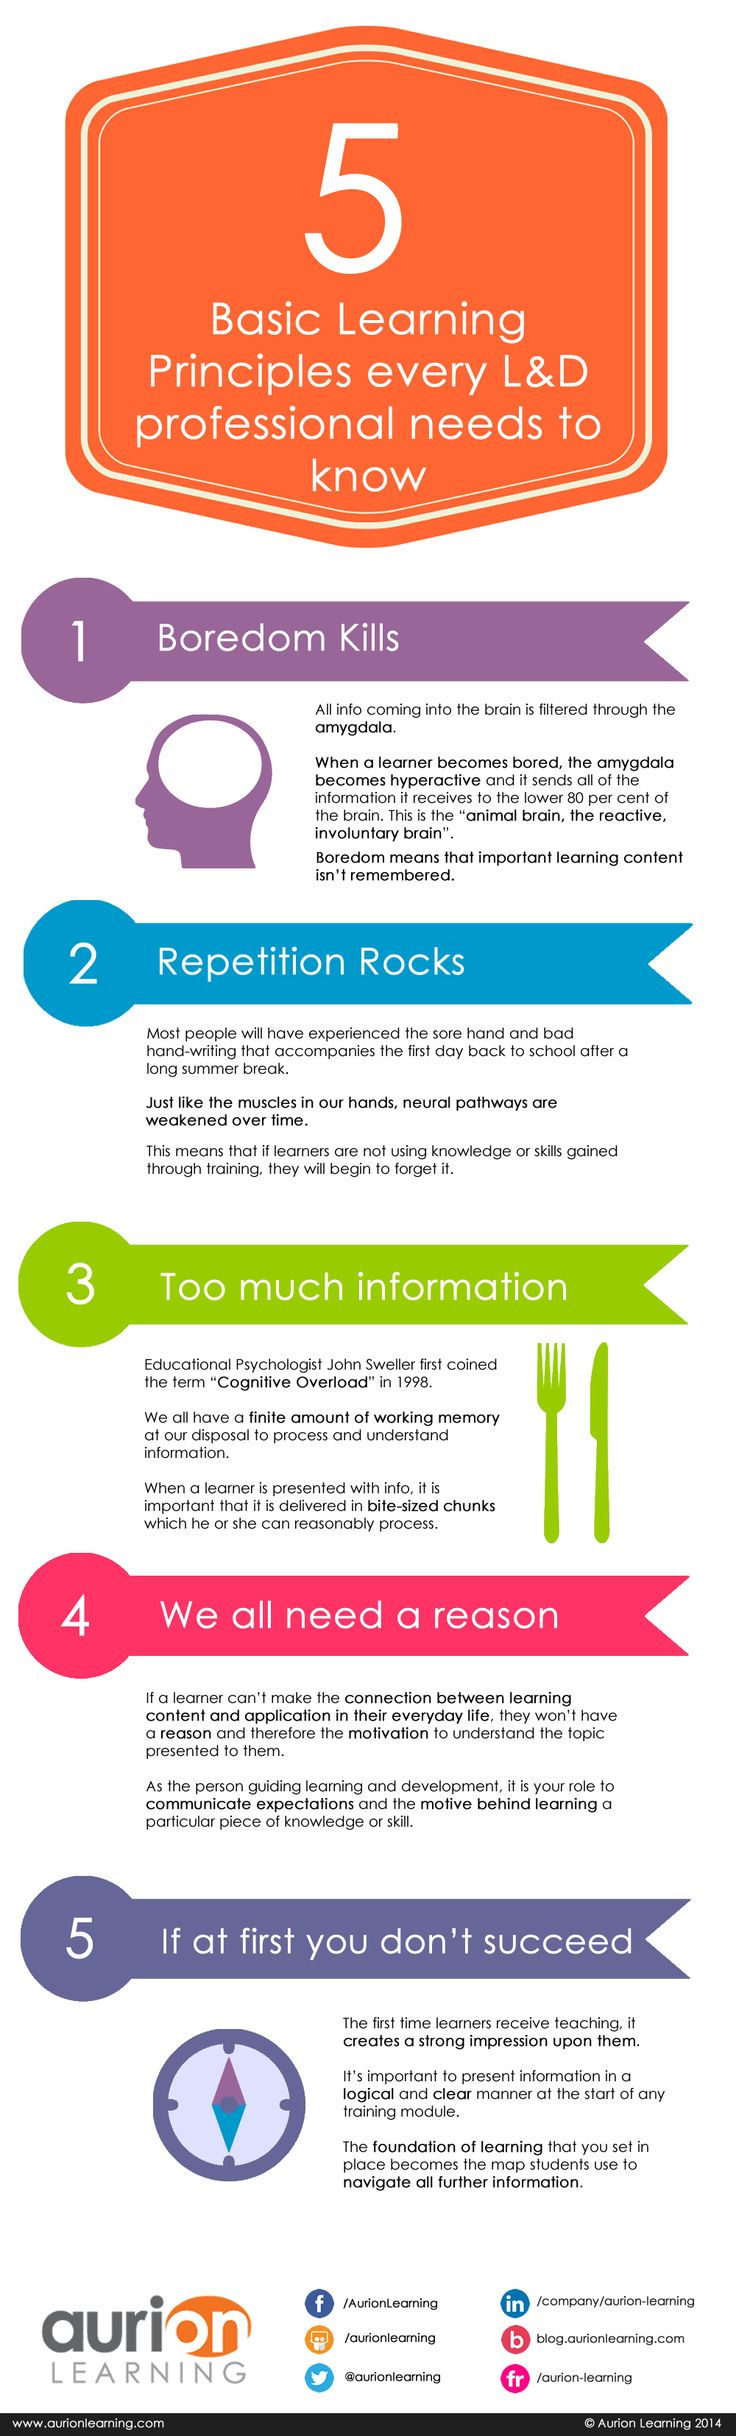 Infographic displaying the five basic learning principles all LD professionals need to know.